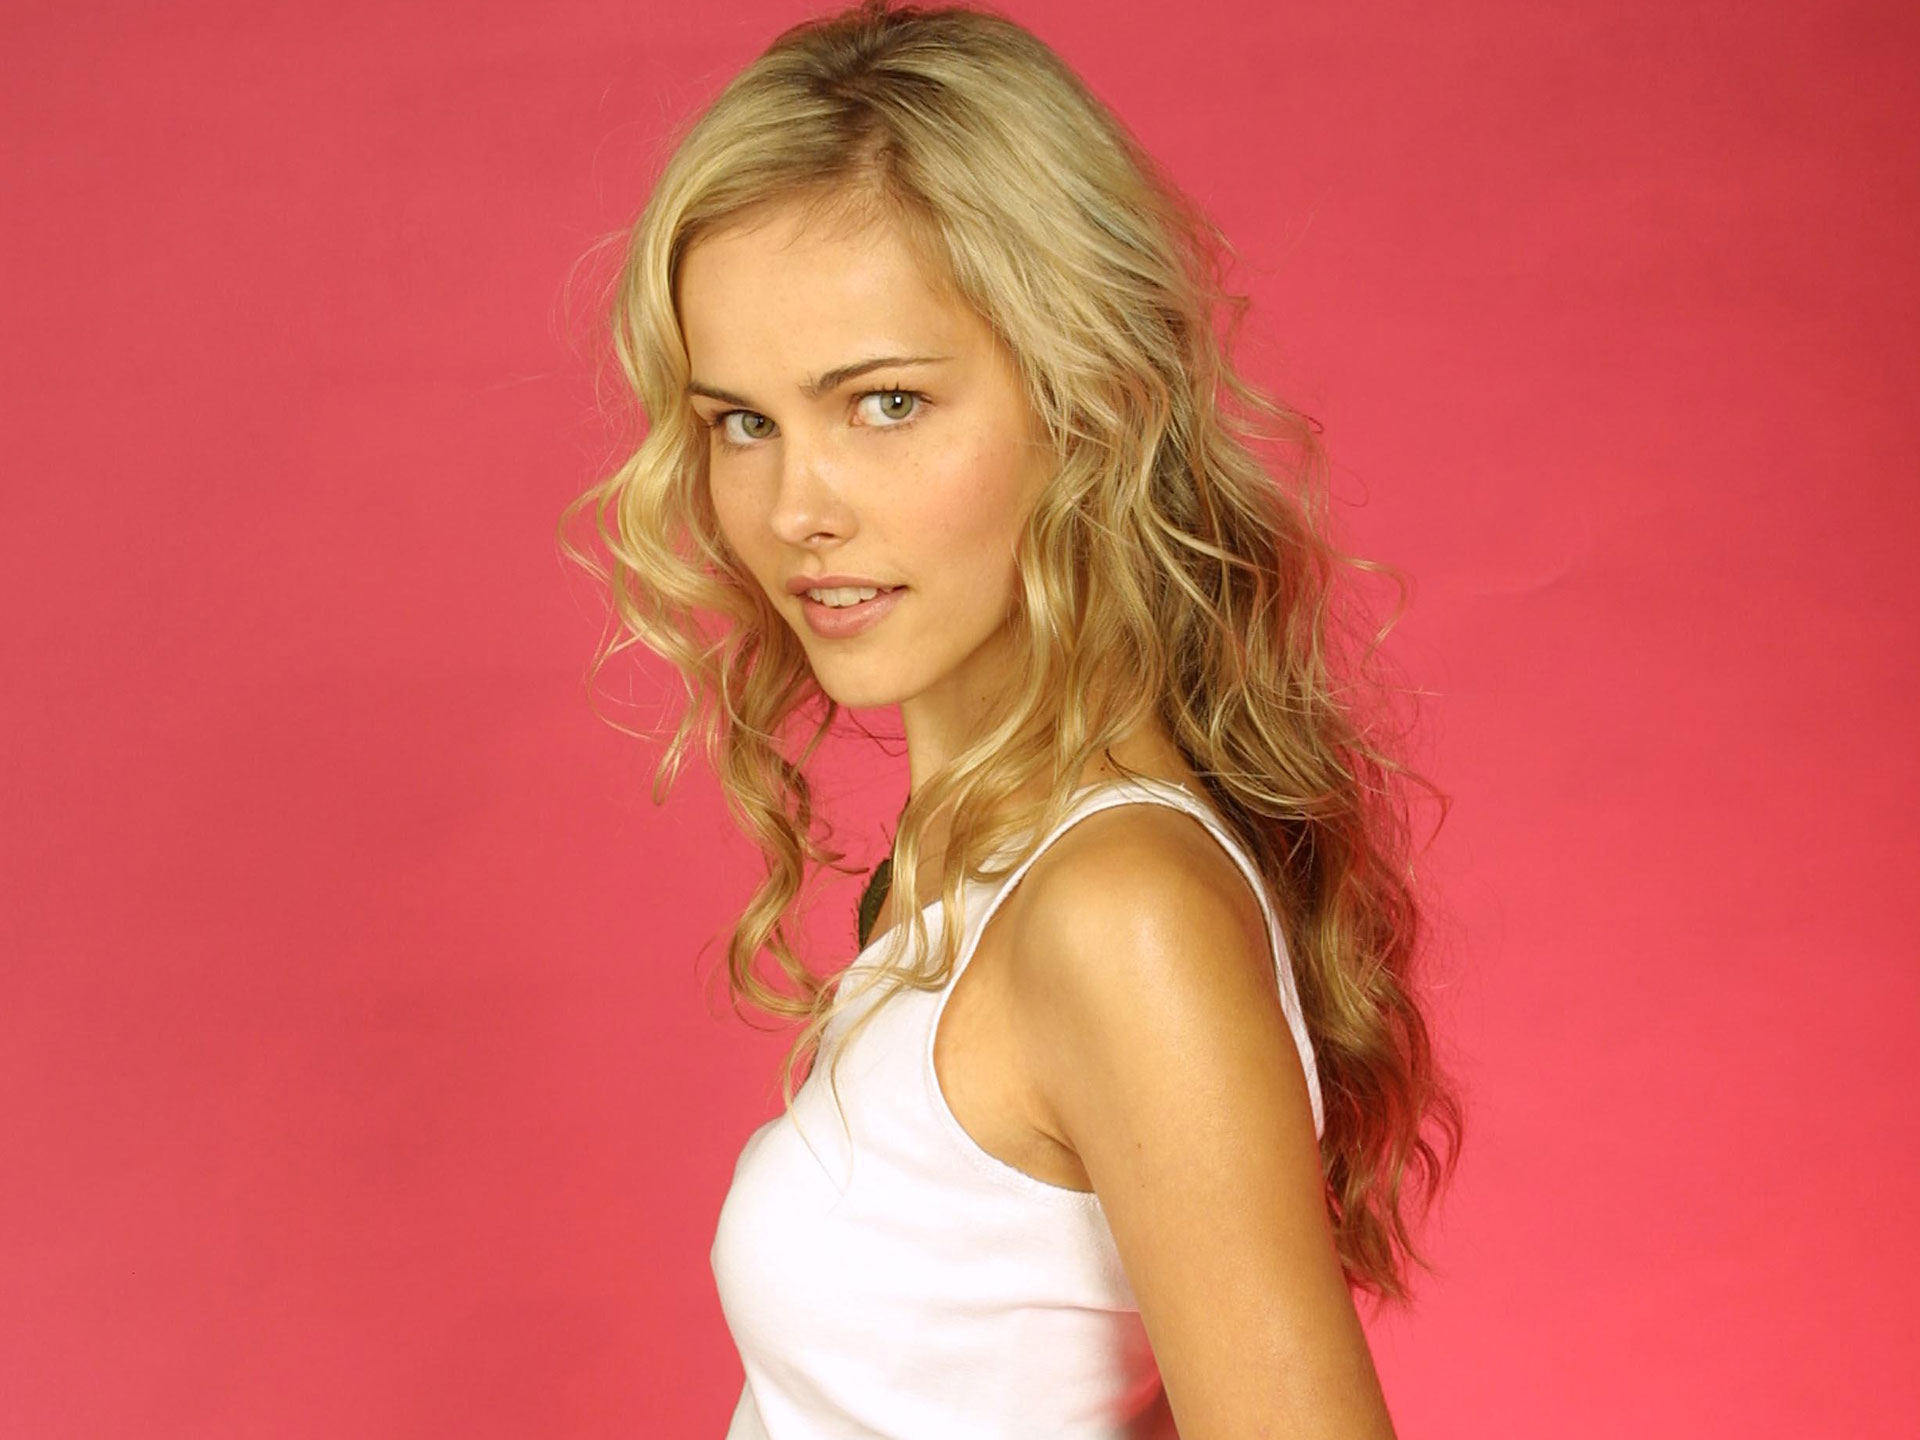 Transformers  Girl Isabel Lucas